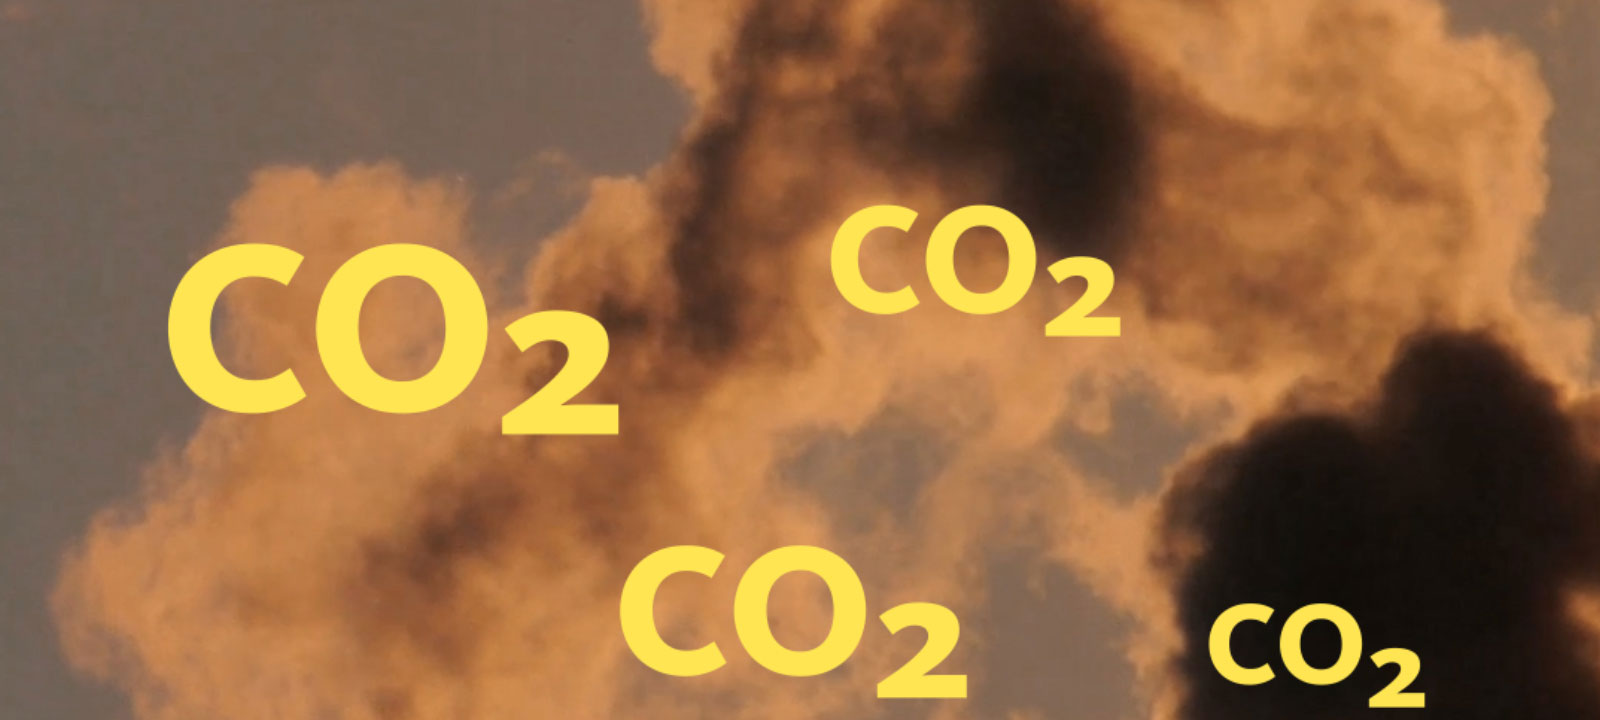 CO2 floating in a cloud of smoke